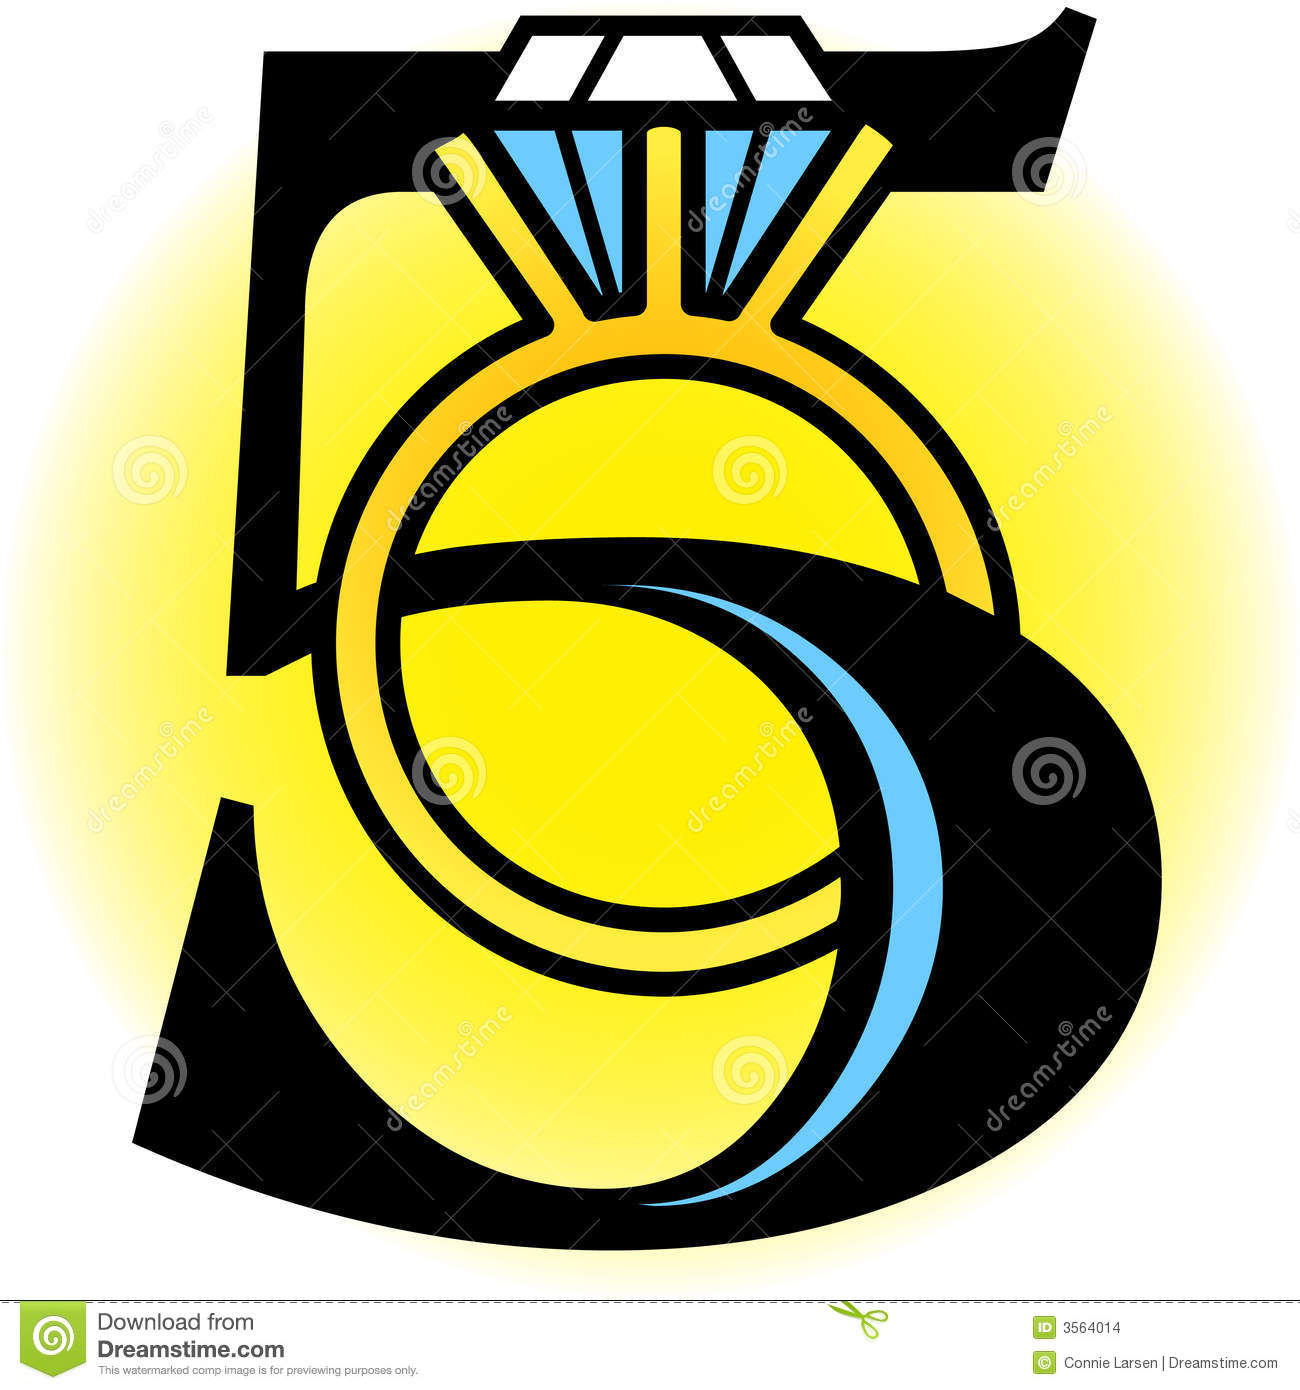 Five Golden Rings/eps stock vector. Illustration of fifth.